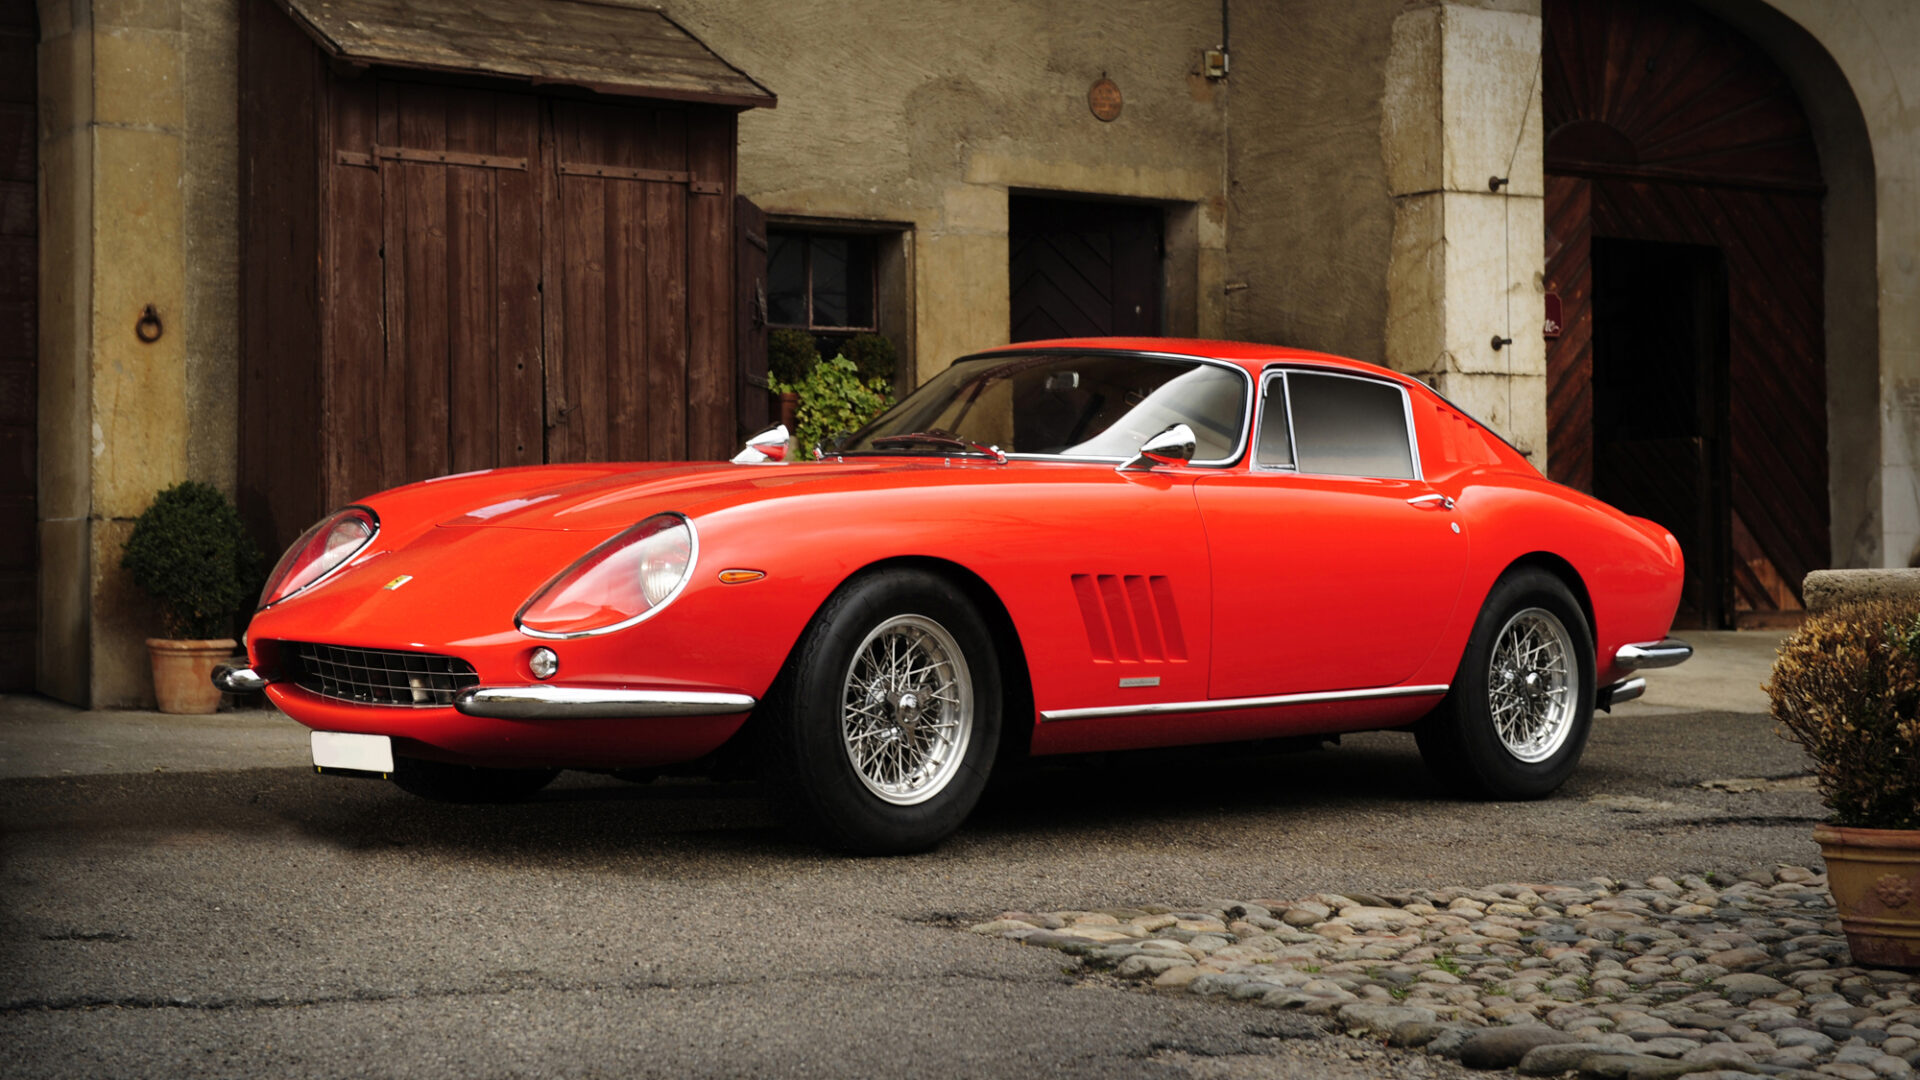 1967 Ferrari 275 Gtb:4 Berlinetta Rms Simon Clay